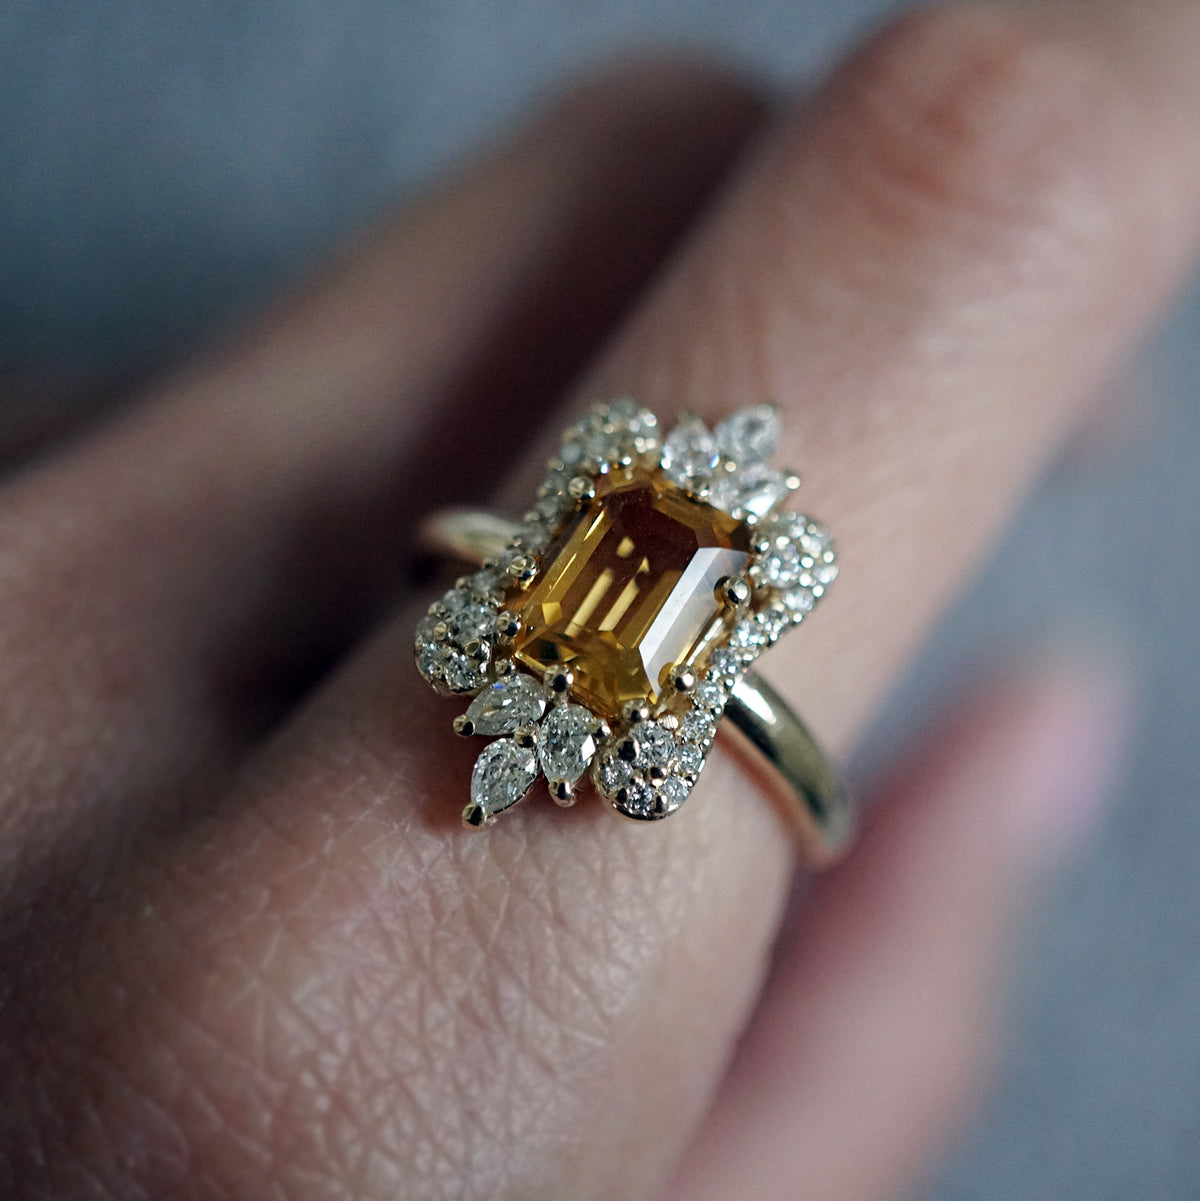 Eleanor Diamond Ring (Citrine/Morganite) - Tippy Taste Jewelry